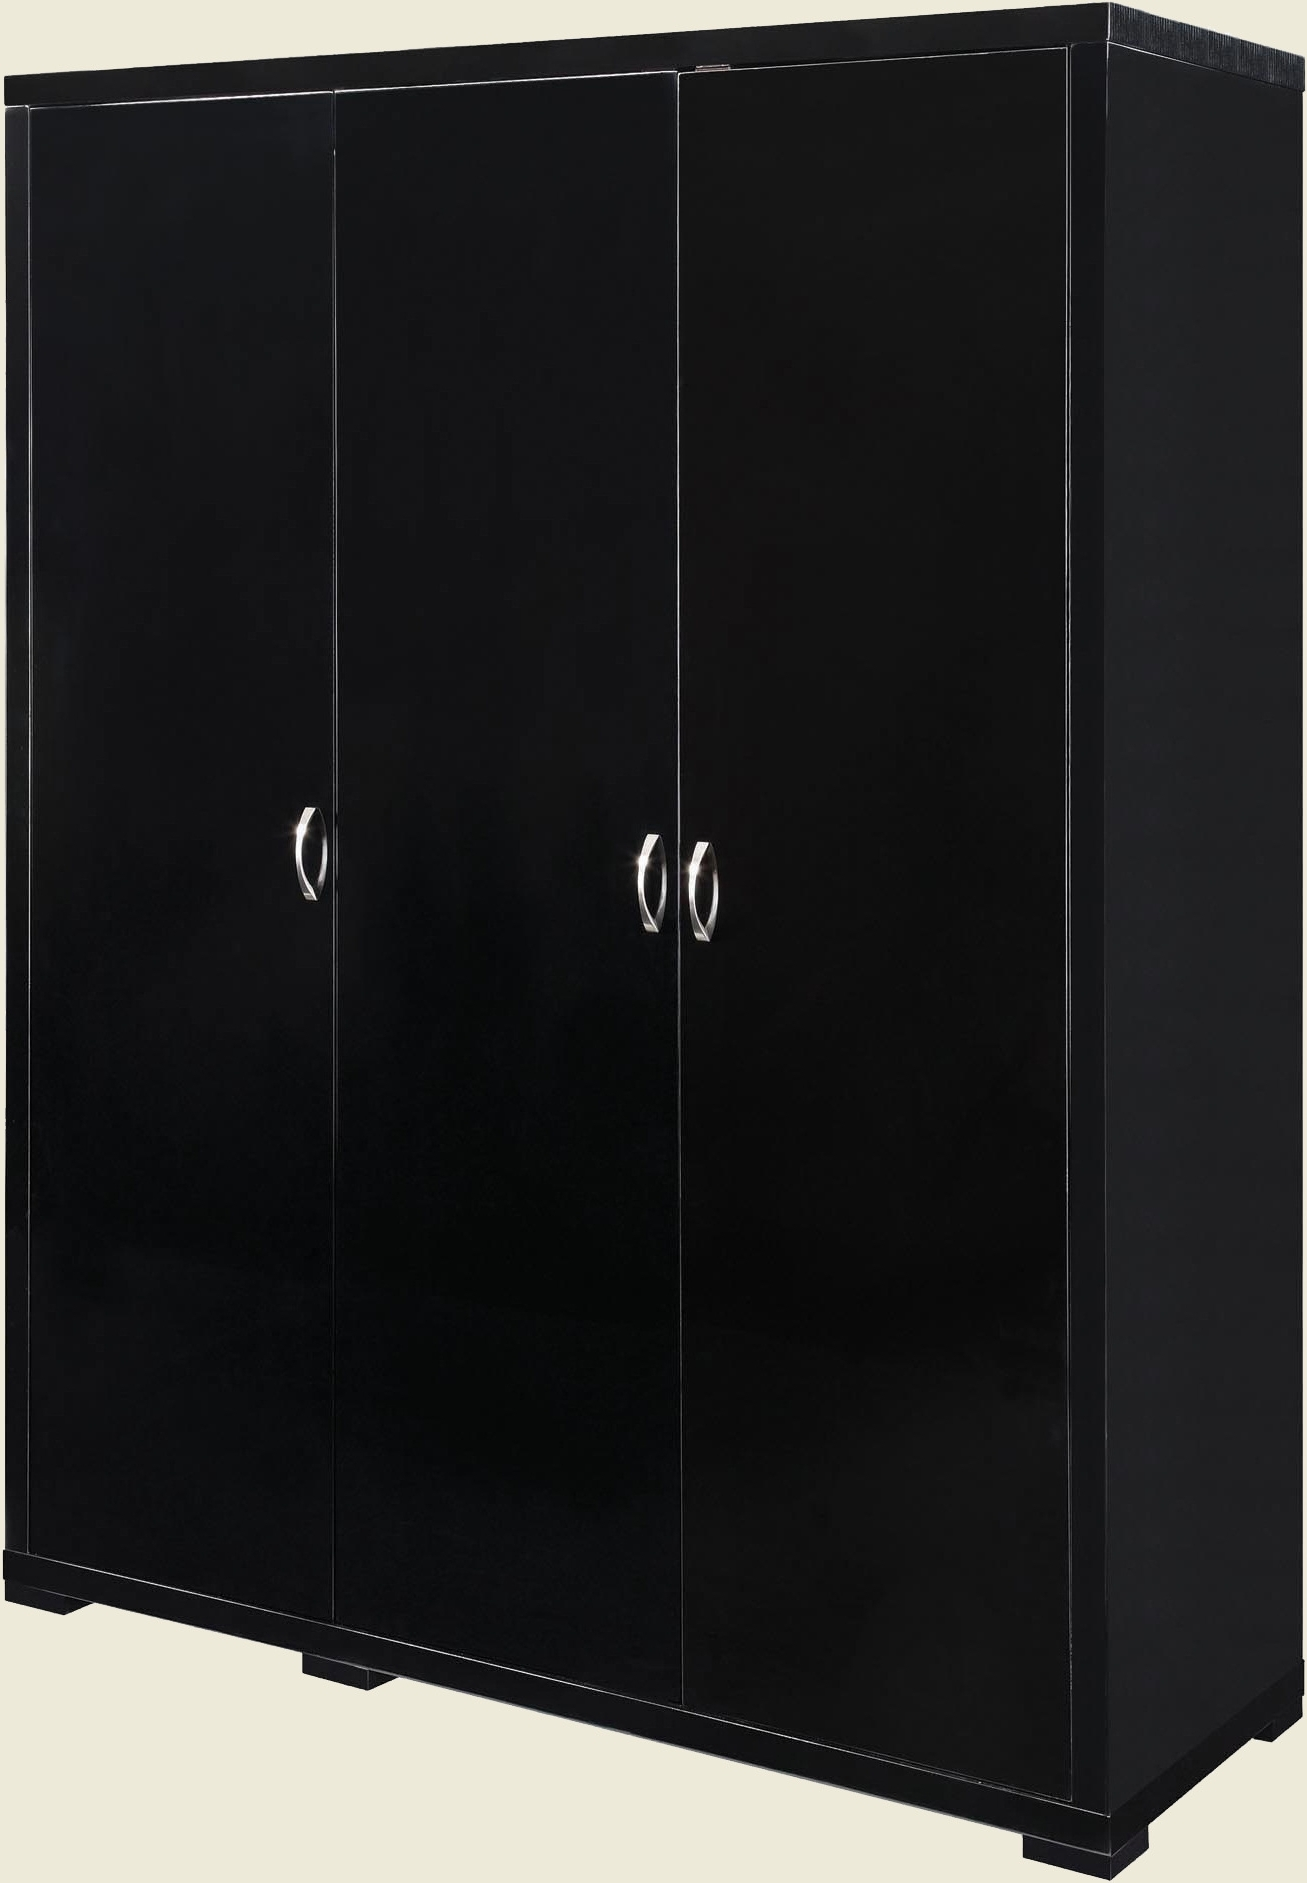 Black 3 Door Wardrobes In Preferred Luna 3 Door Wardrobe (View 4 of 15)